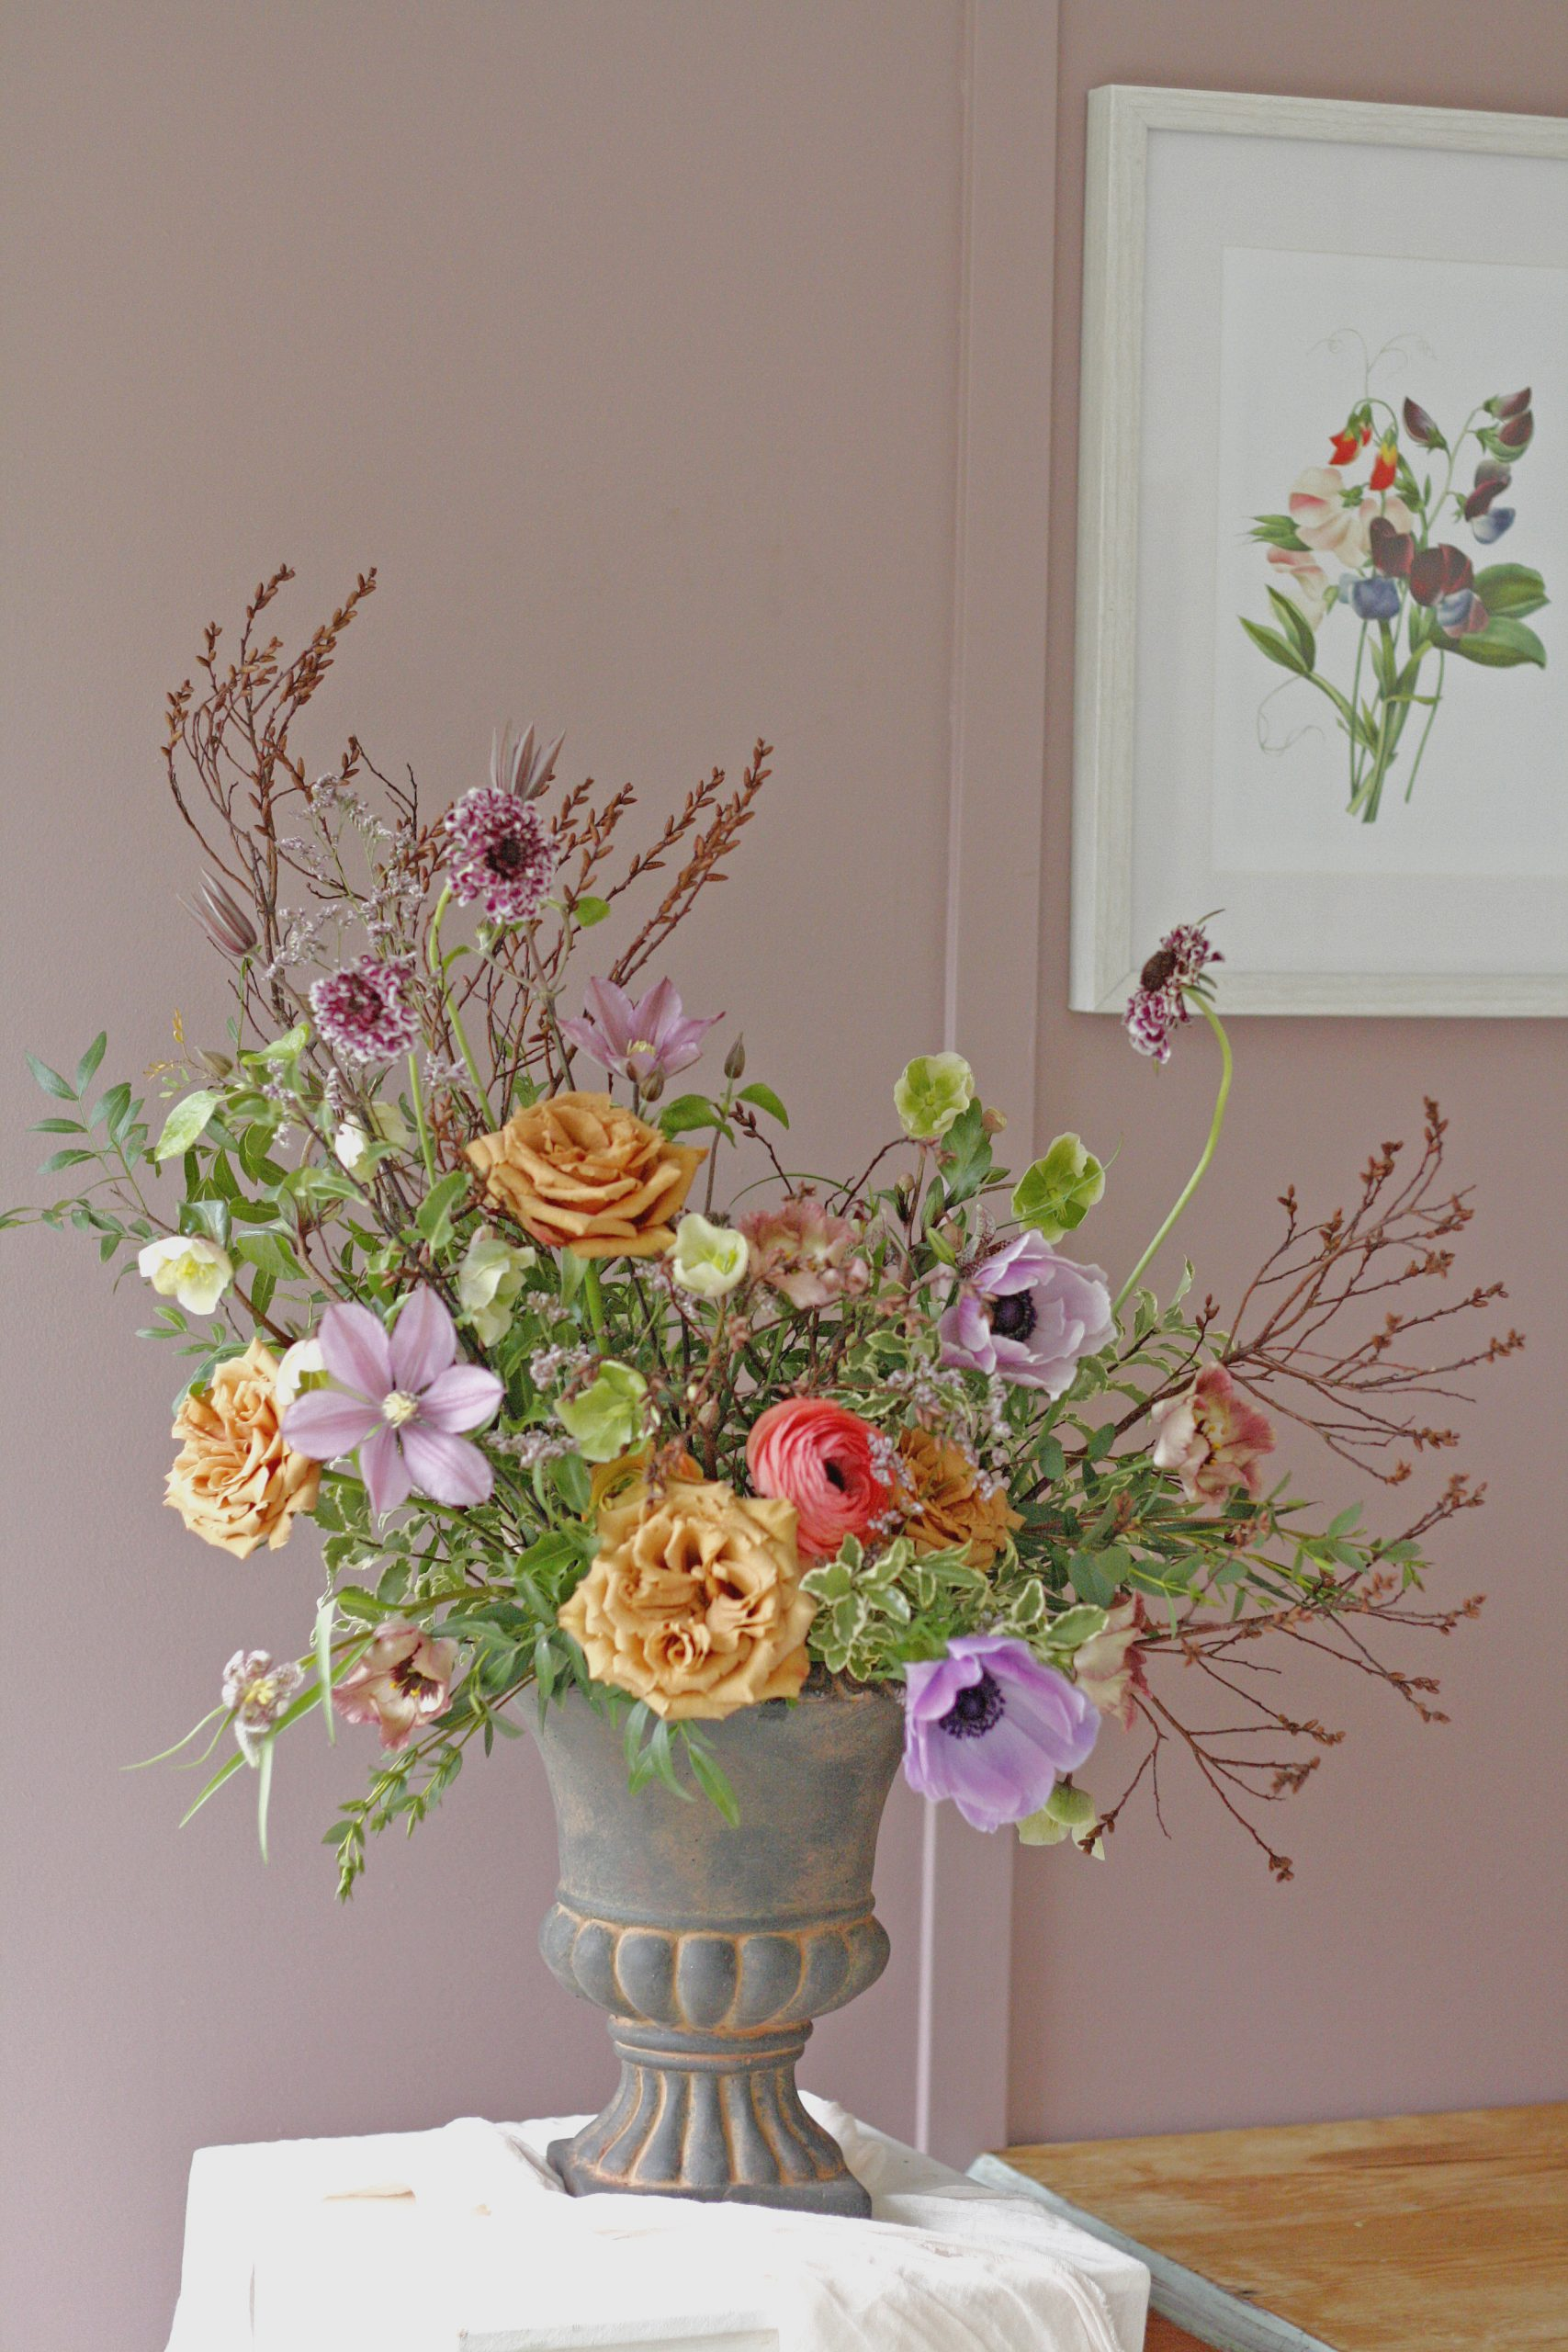 Hints and Tips for a Career Change into Floristry